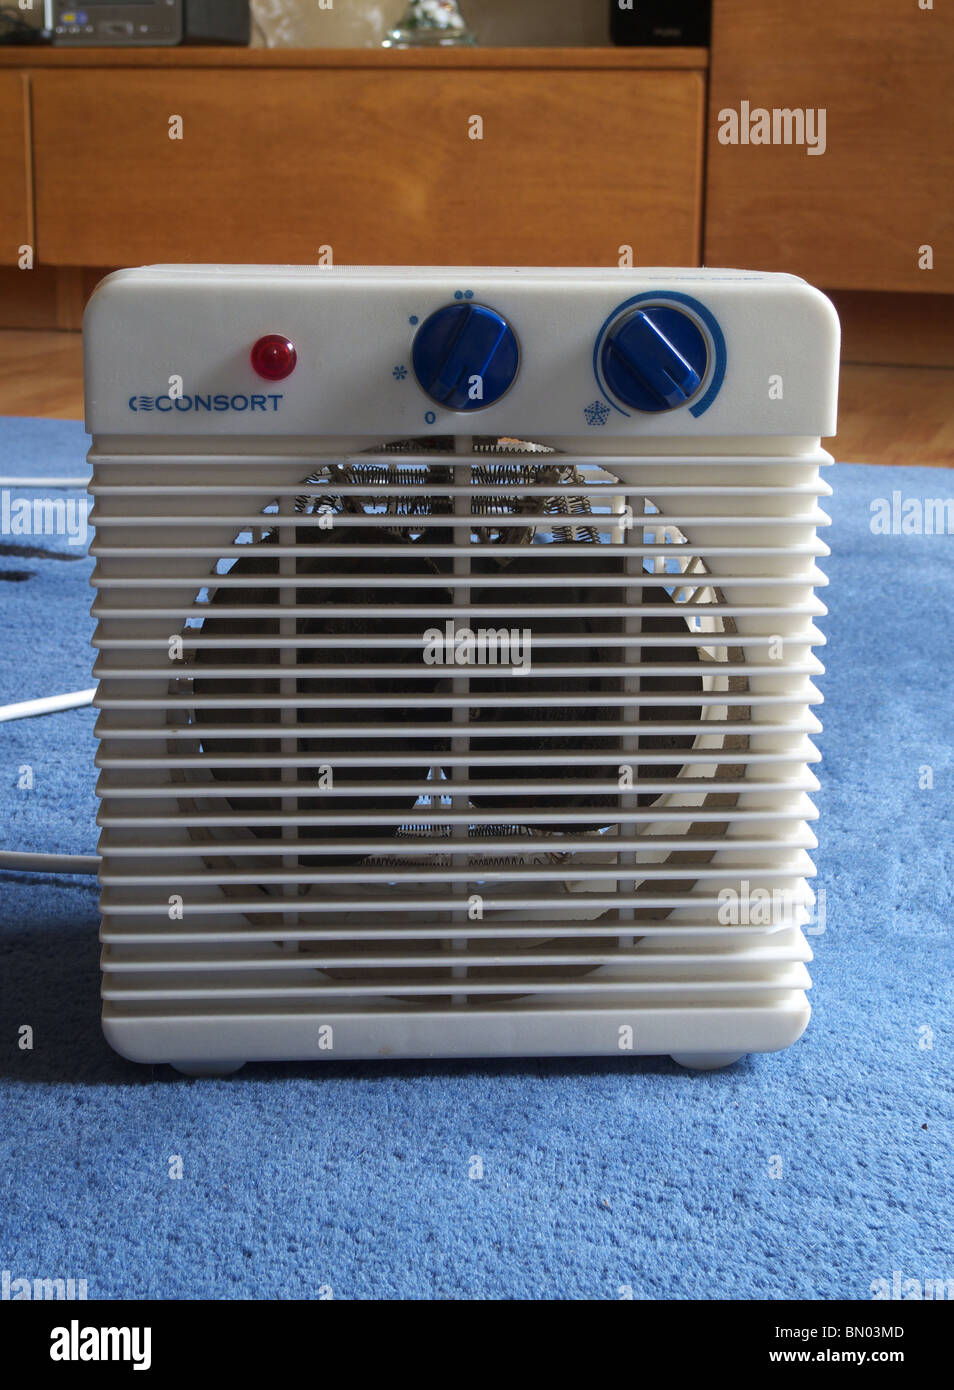 Electric Domestic Fan Heater On a Rug In a Home Environment - Stock Image